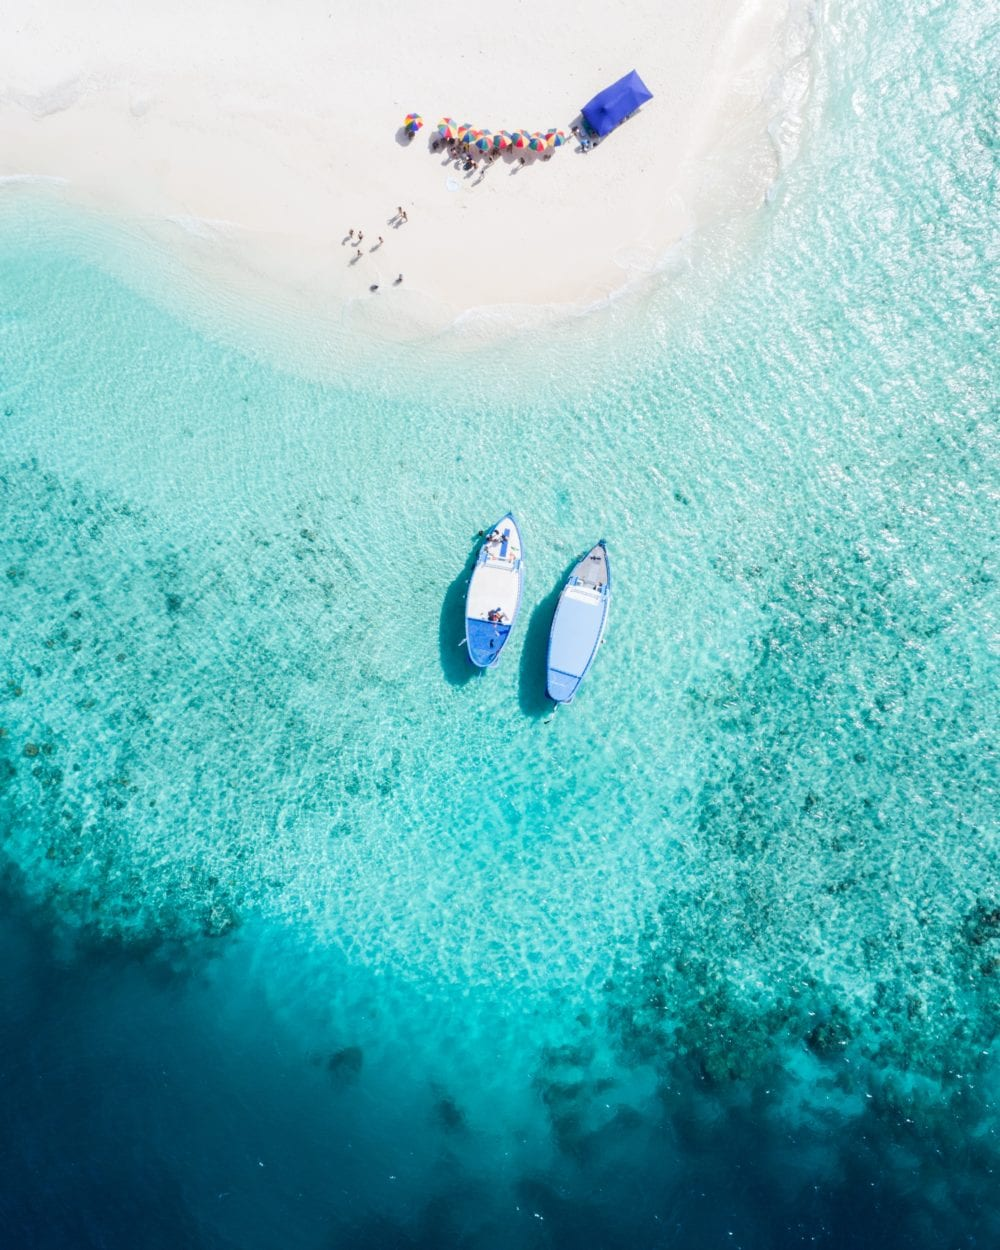 Fishing - Dolphin Cruise - 10 Things to do in the Maldives